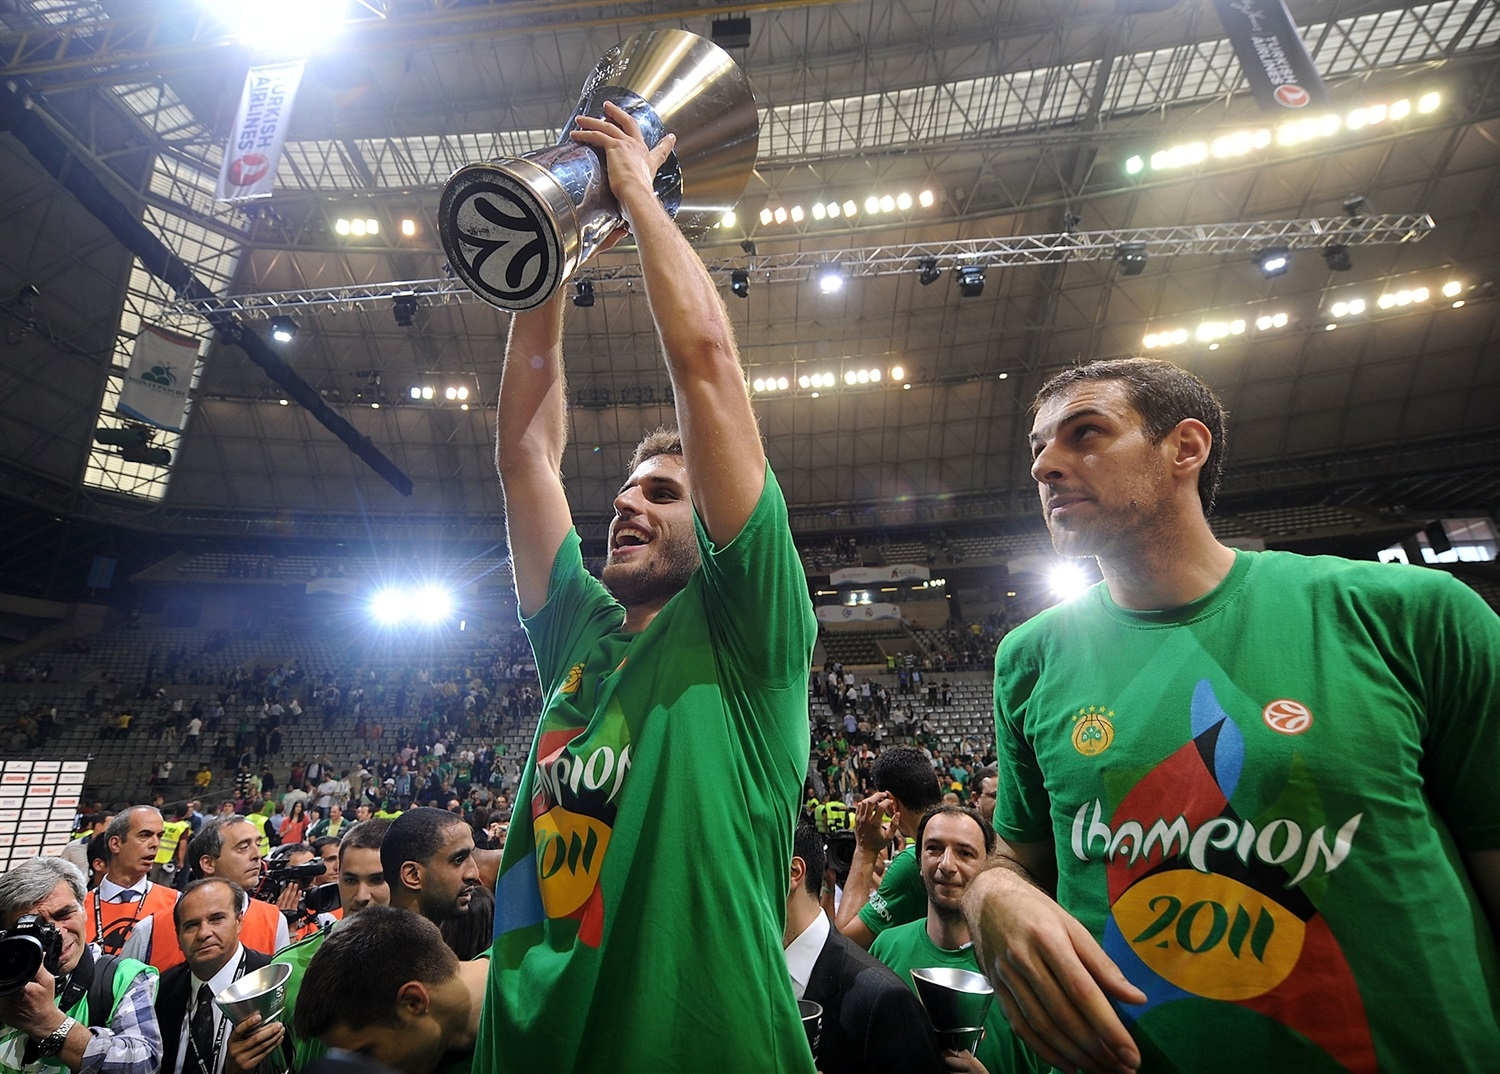 Stratos Perperoglou - Panathinaikos Champ Final Four Barcelona 2011 - EB10